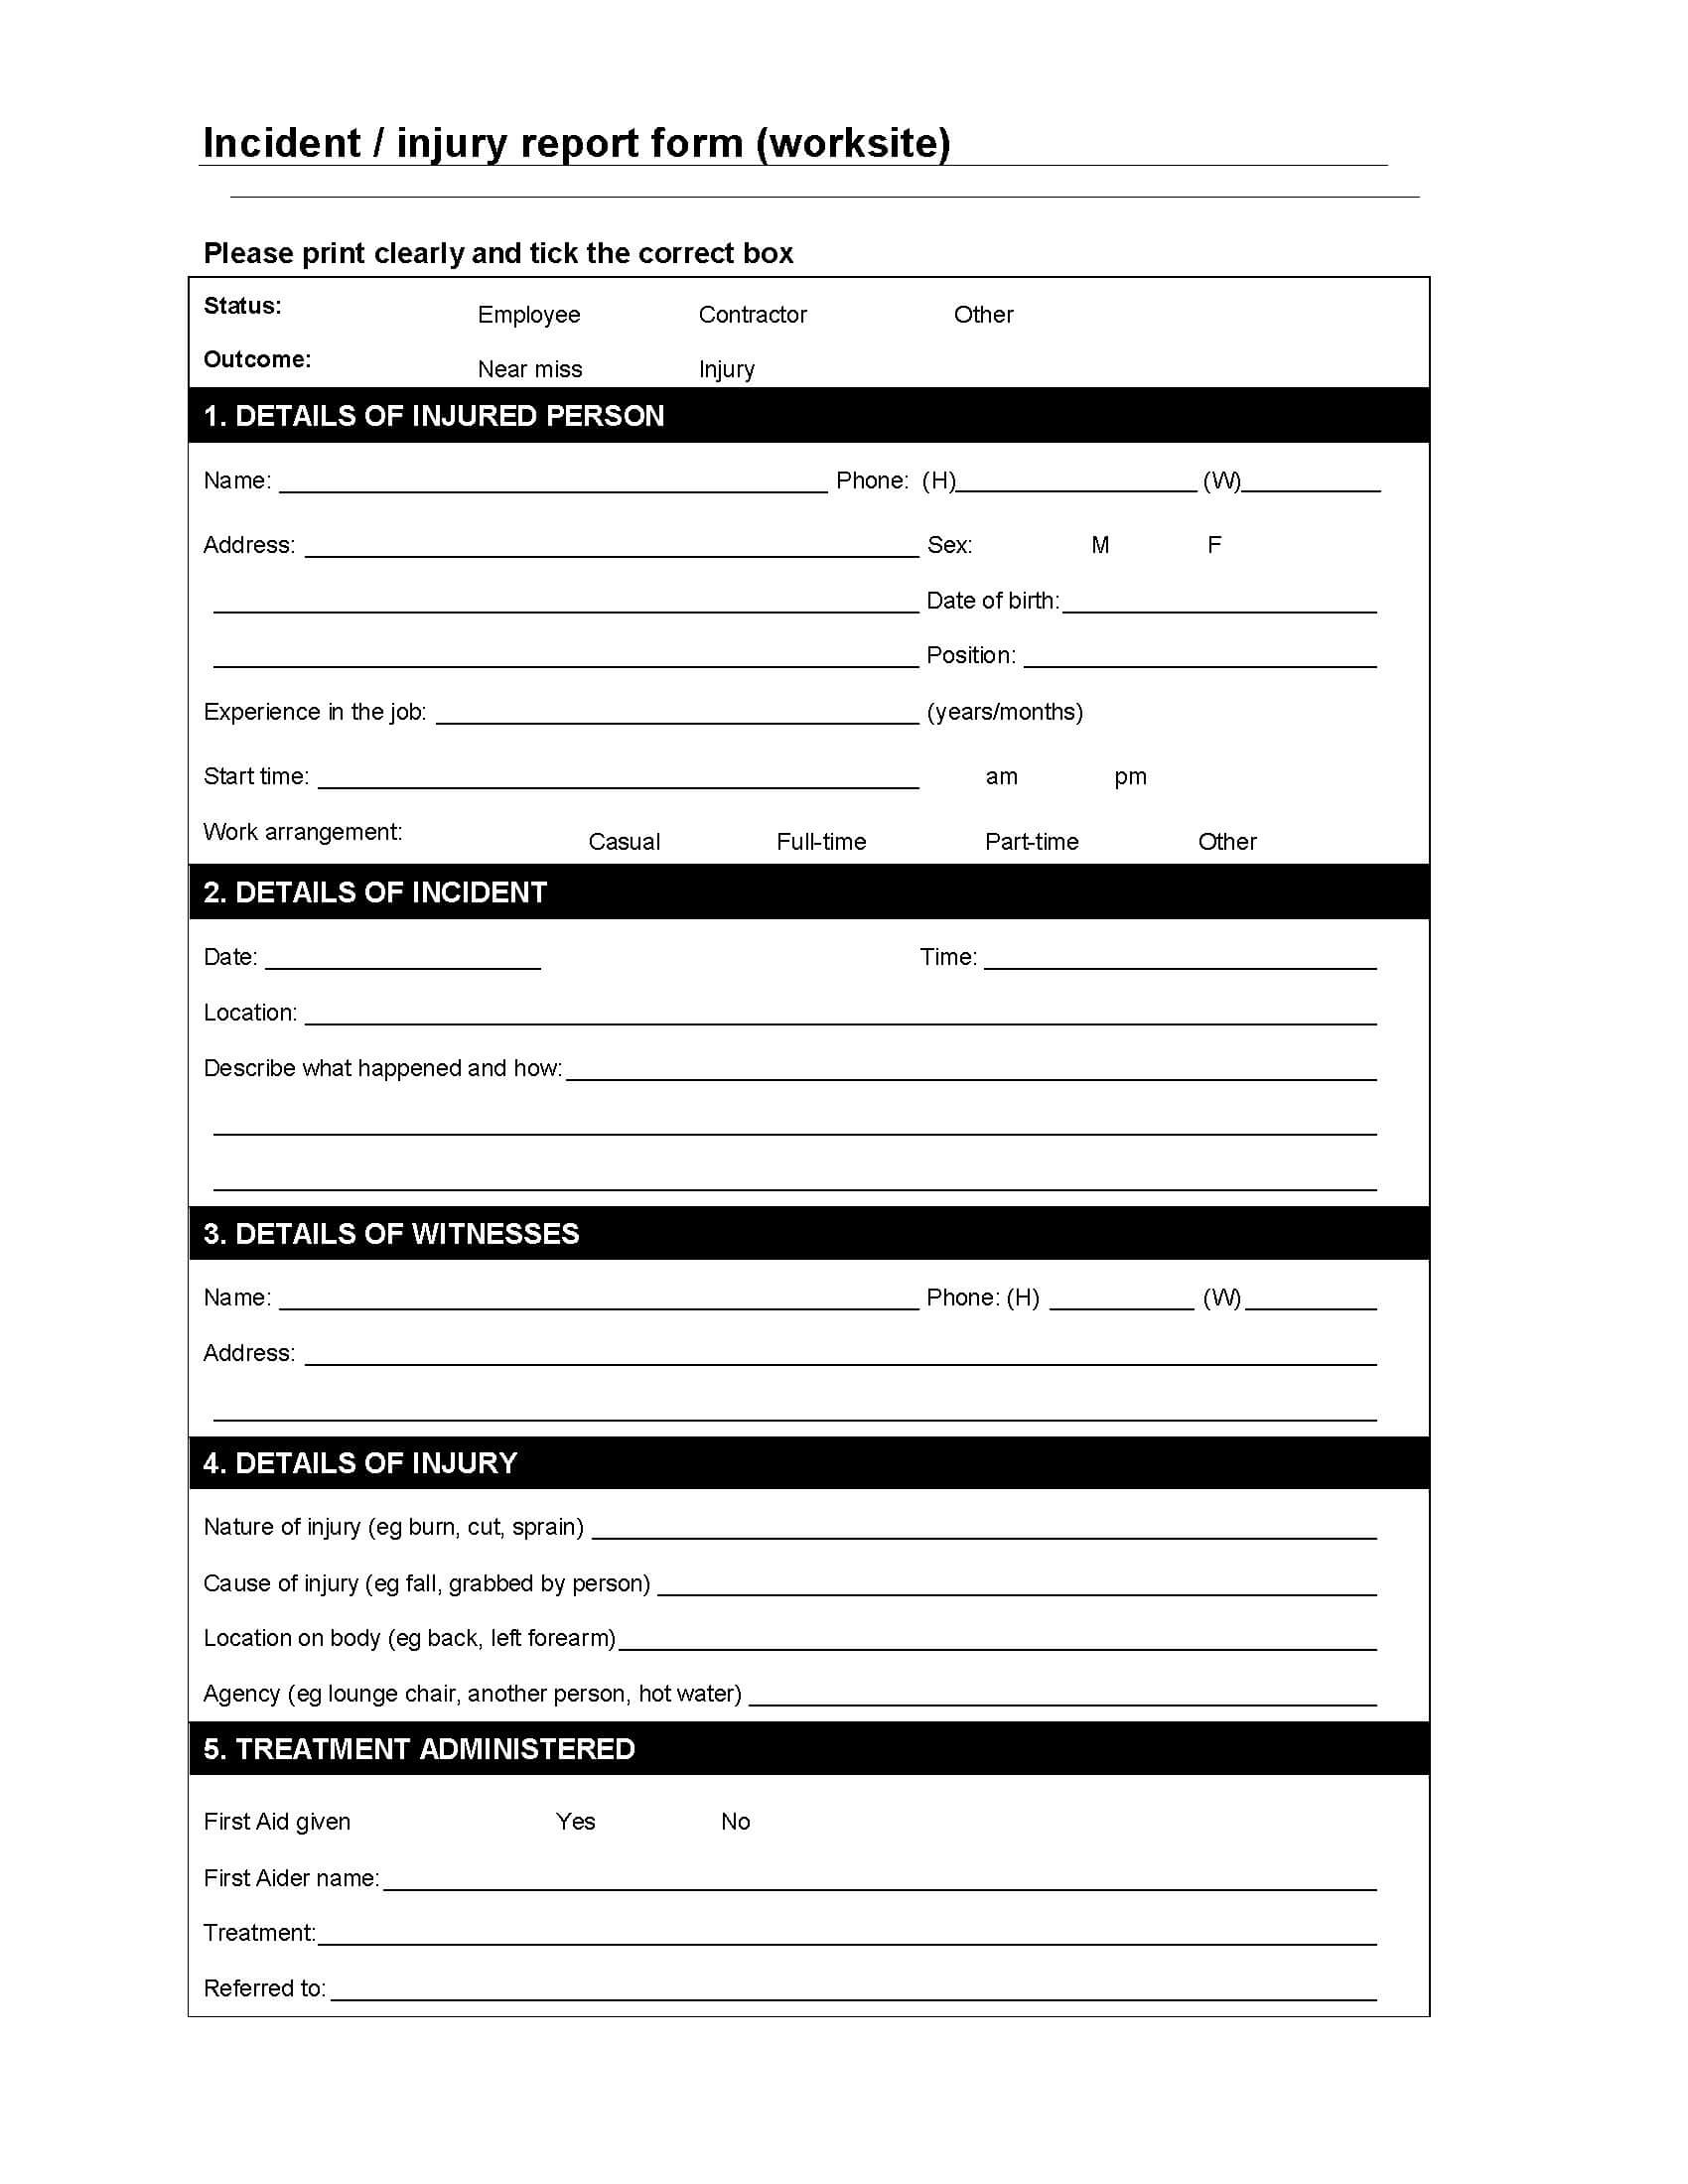 Worksite Incident / Injury Report Form | Legal Forms And intended for Injury Report Form Template